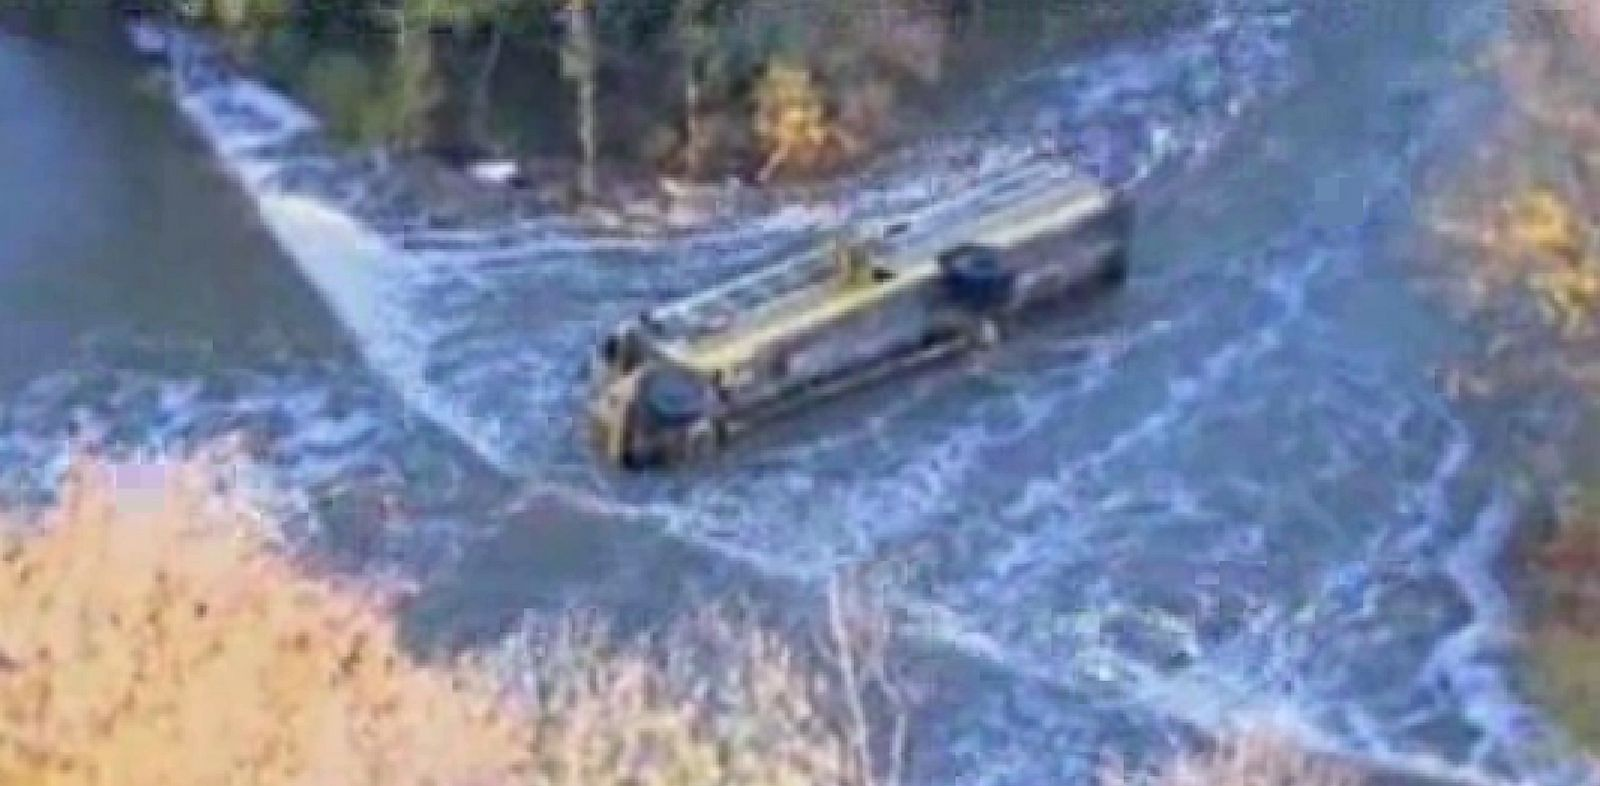 PHOTO: This image provided by KAKE-TV shows a school bus after it toppled into a creek, Thursday, Oct. 31, 2013 in Douglass, Kan.